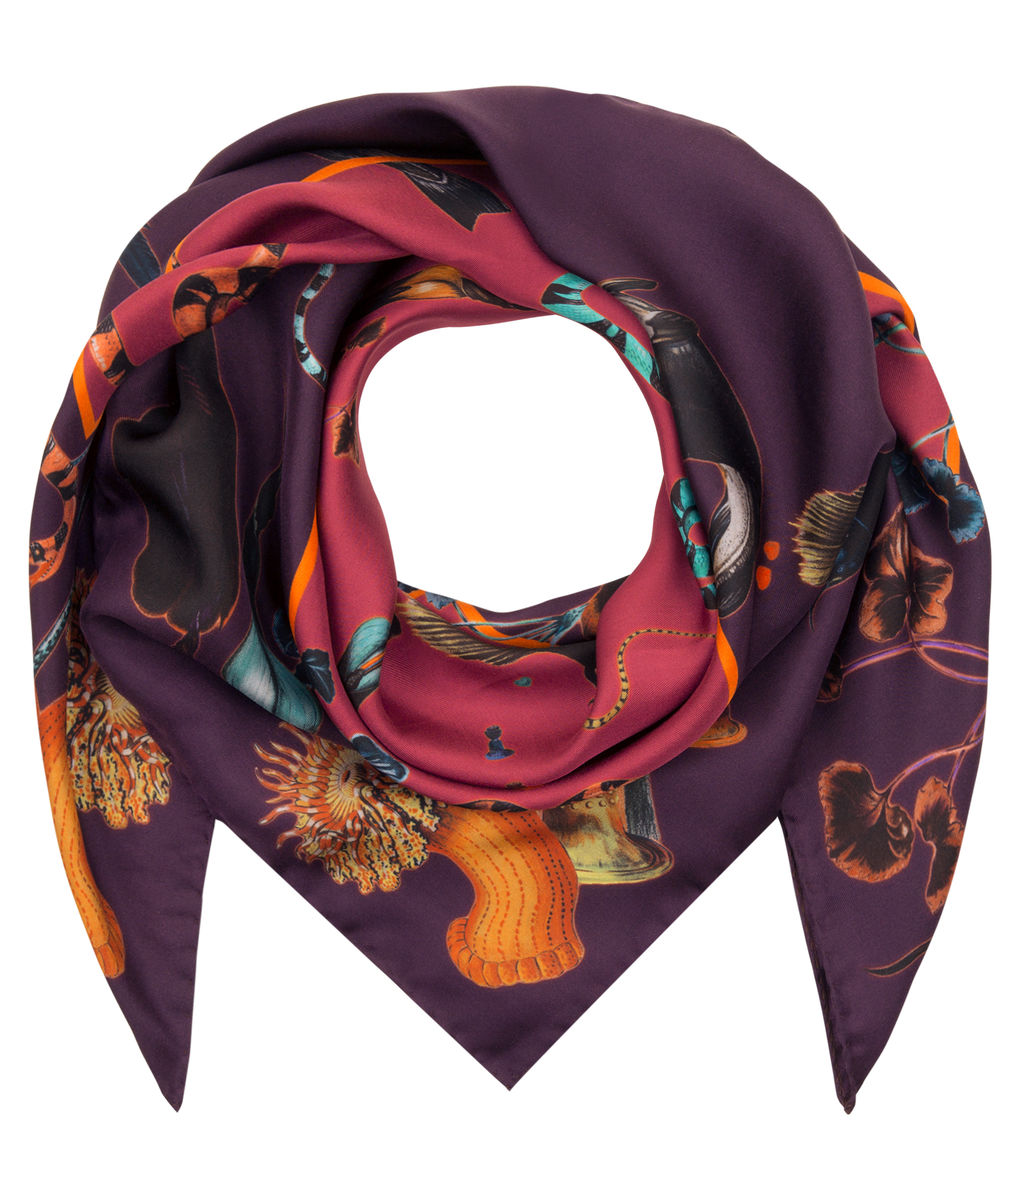 Medium scarf in Rainbow Trout Print (wine) - product images  of